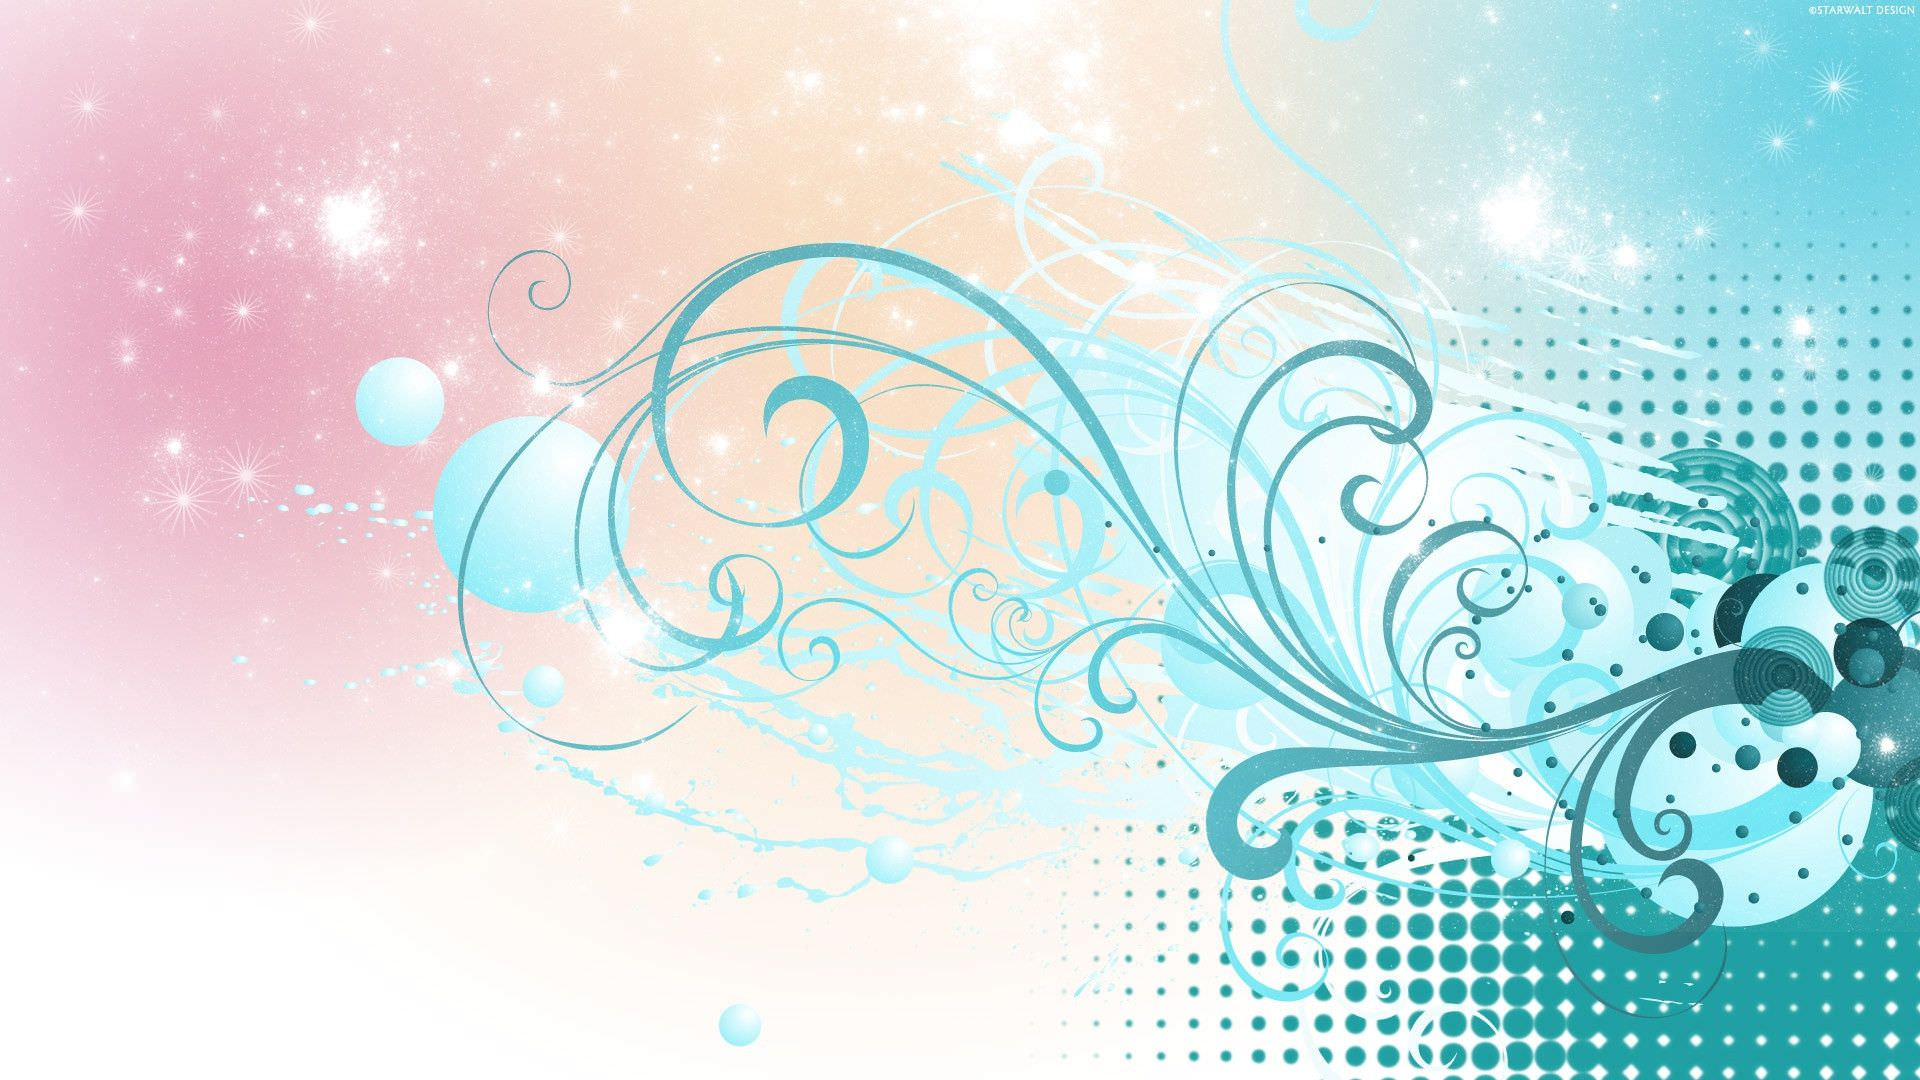 3d Crazy Wallpaper 29 Bright Backgrounds Wallpapers Images Design Trends